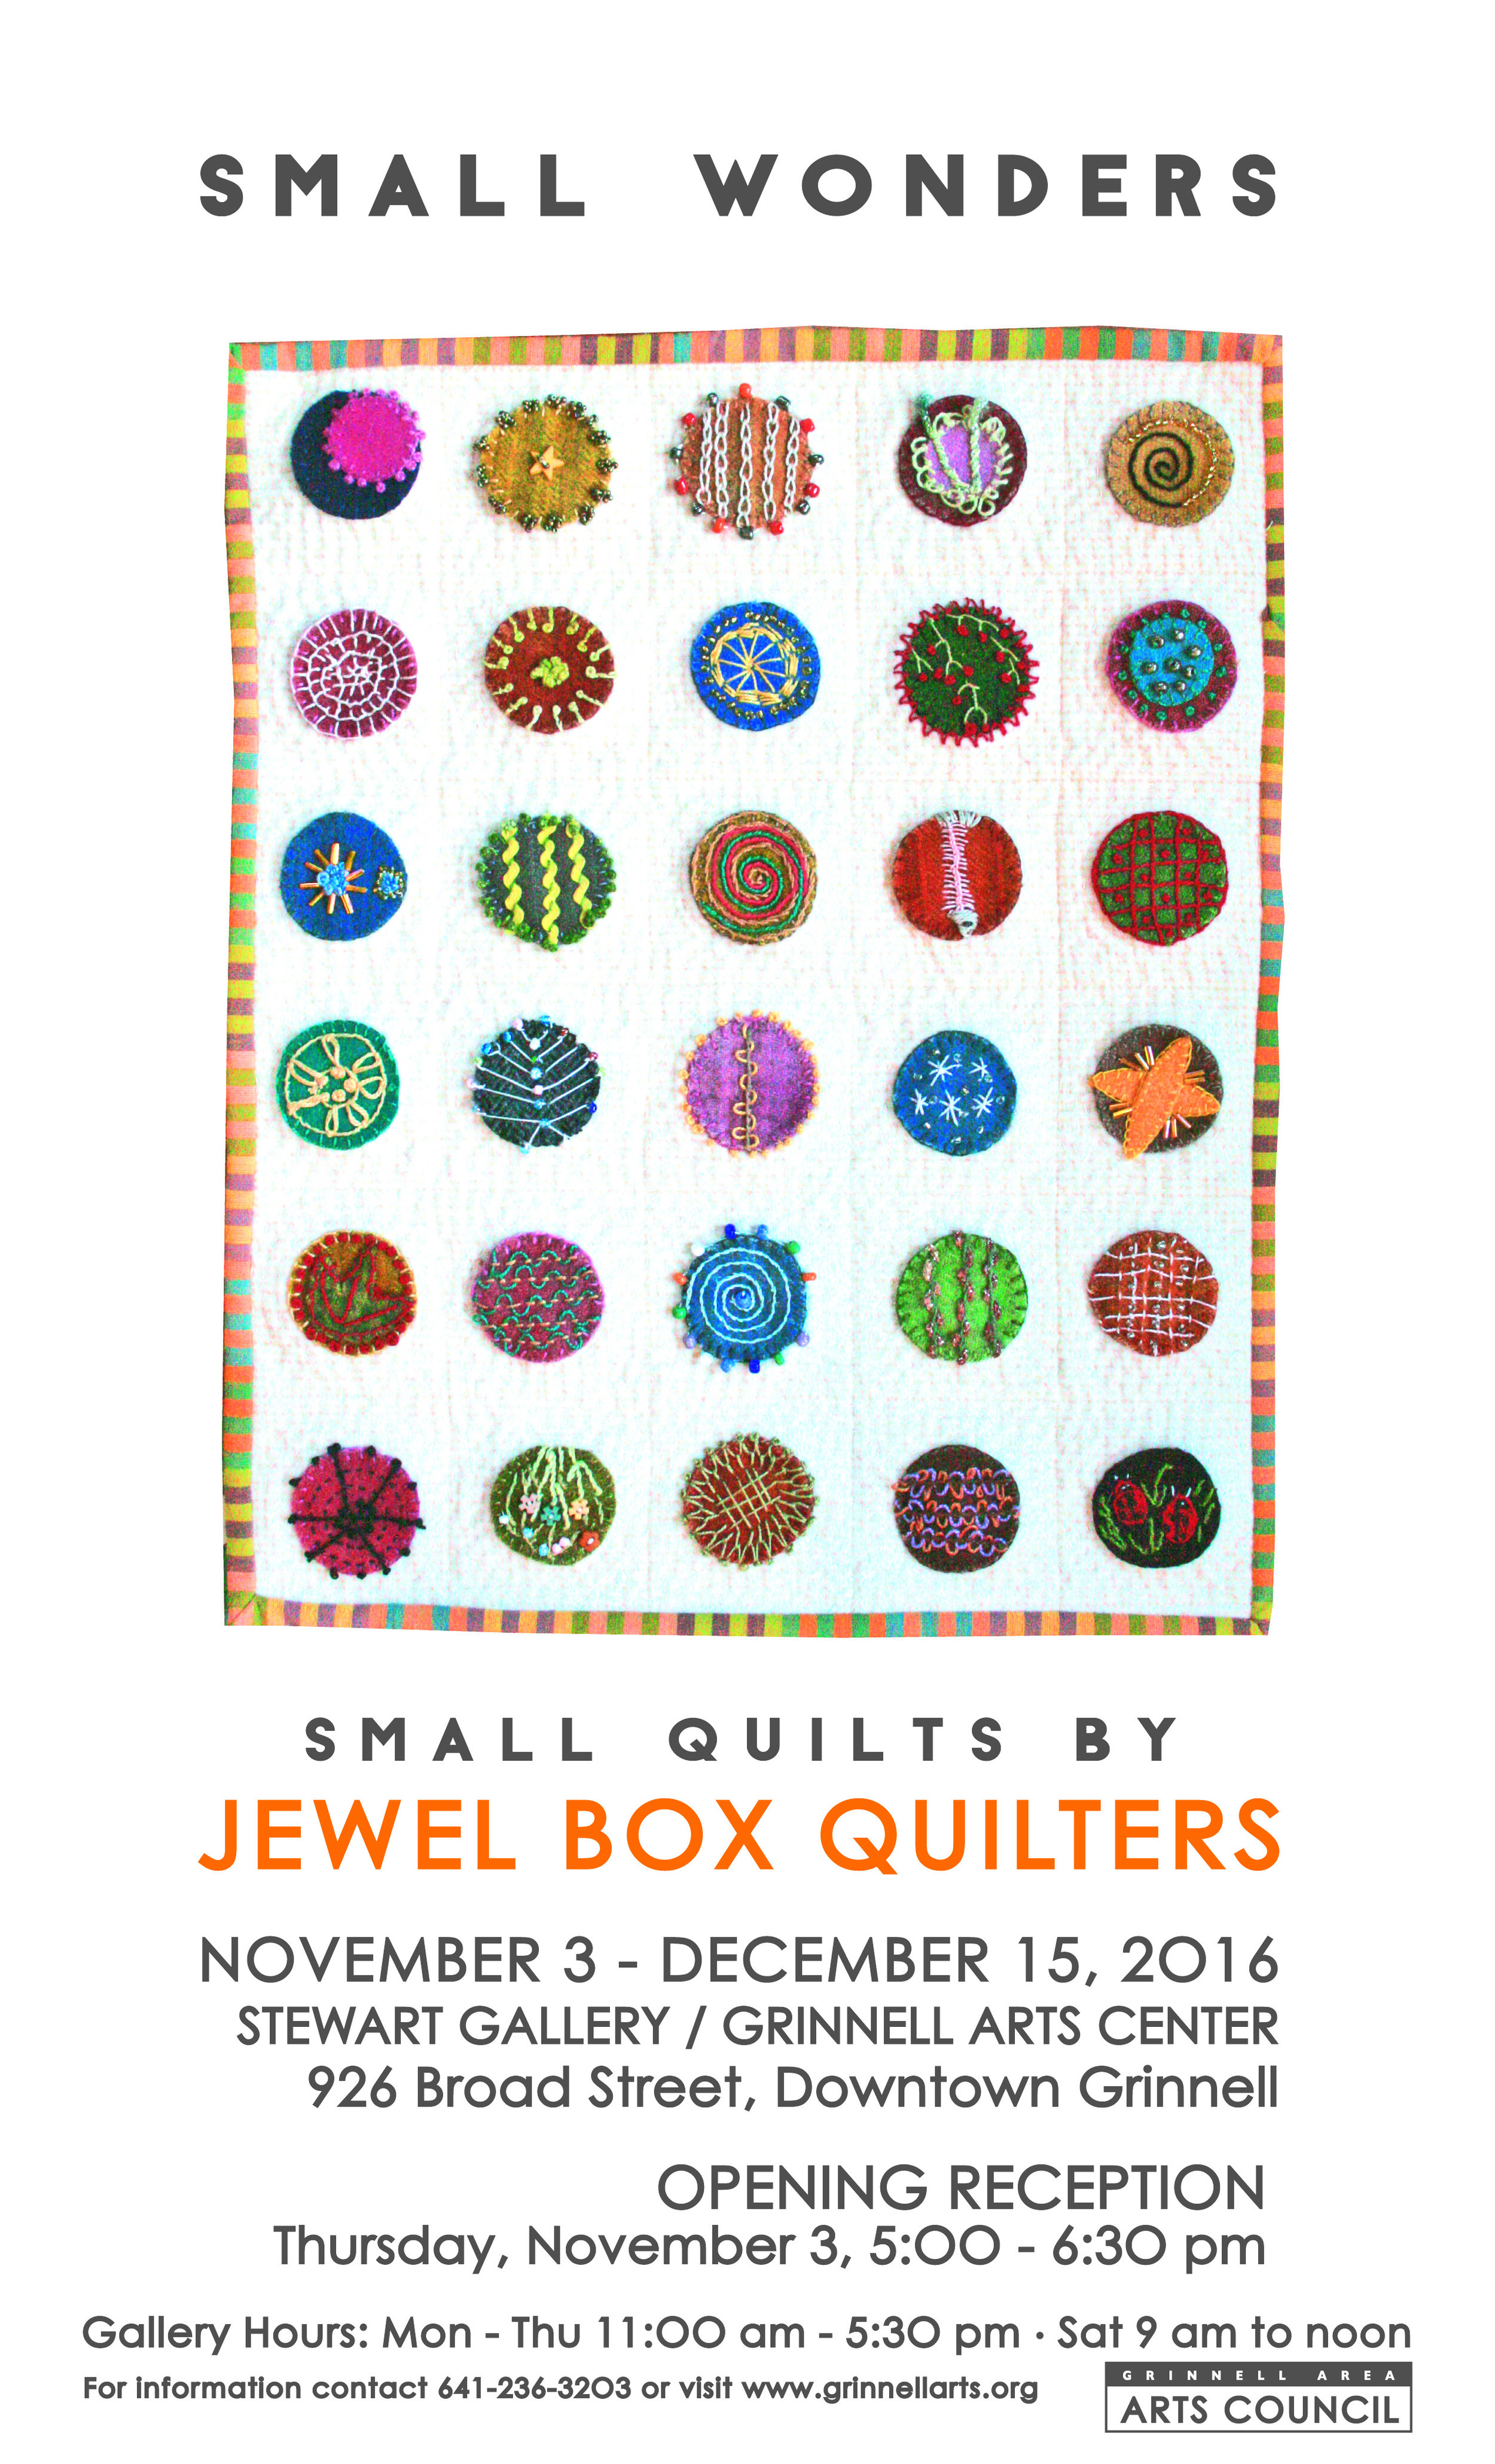 Small Quilts Poster.jpg